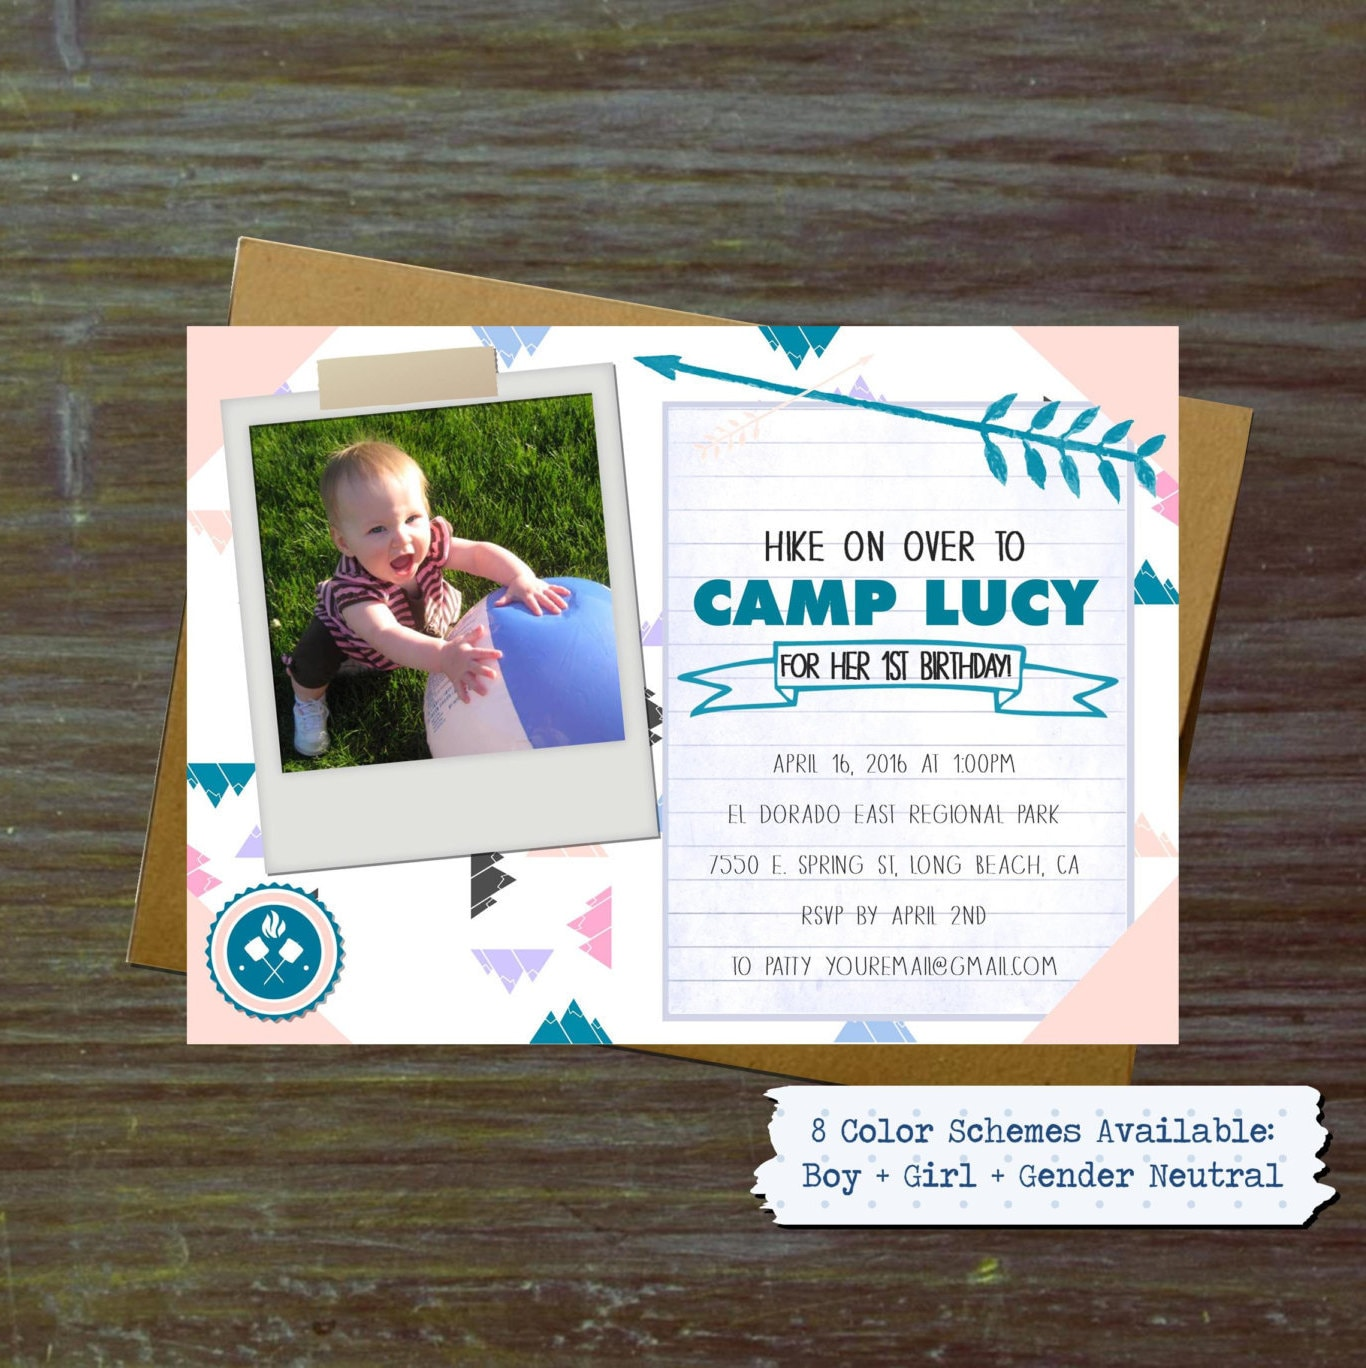 Hike on Over Camping Birthday Invitations Hip Girl Boy